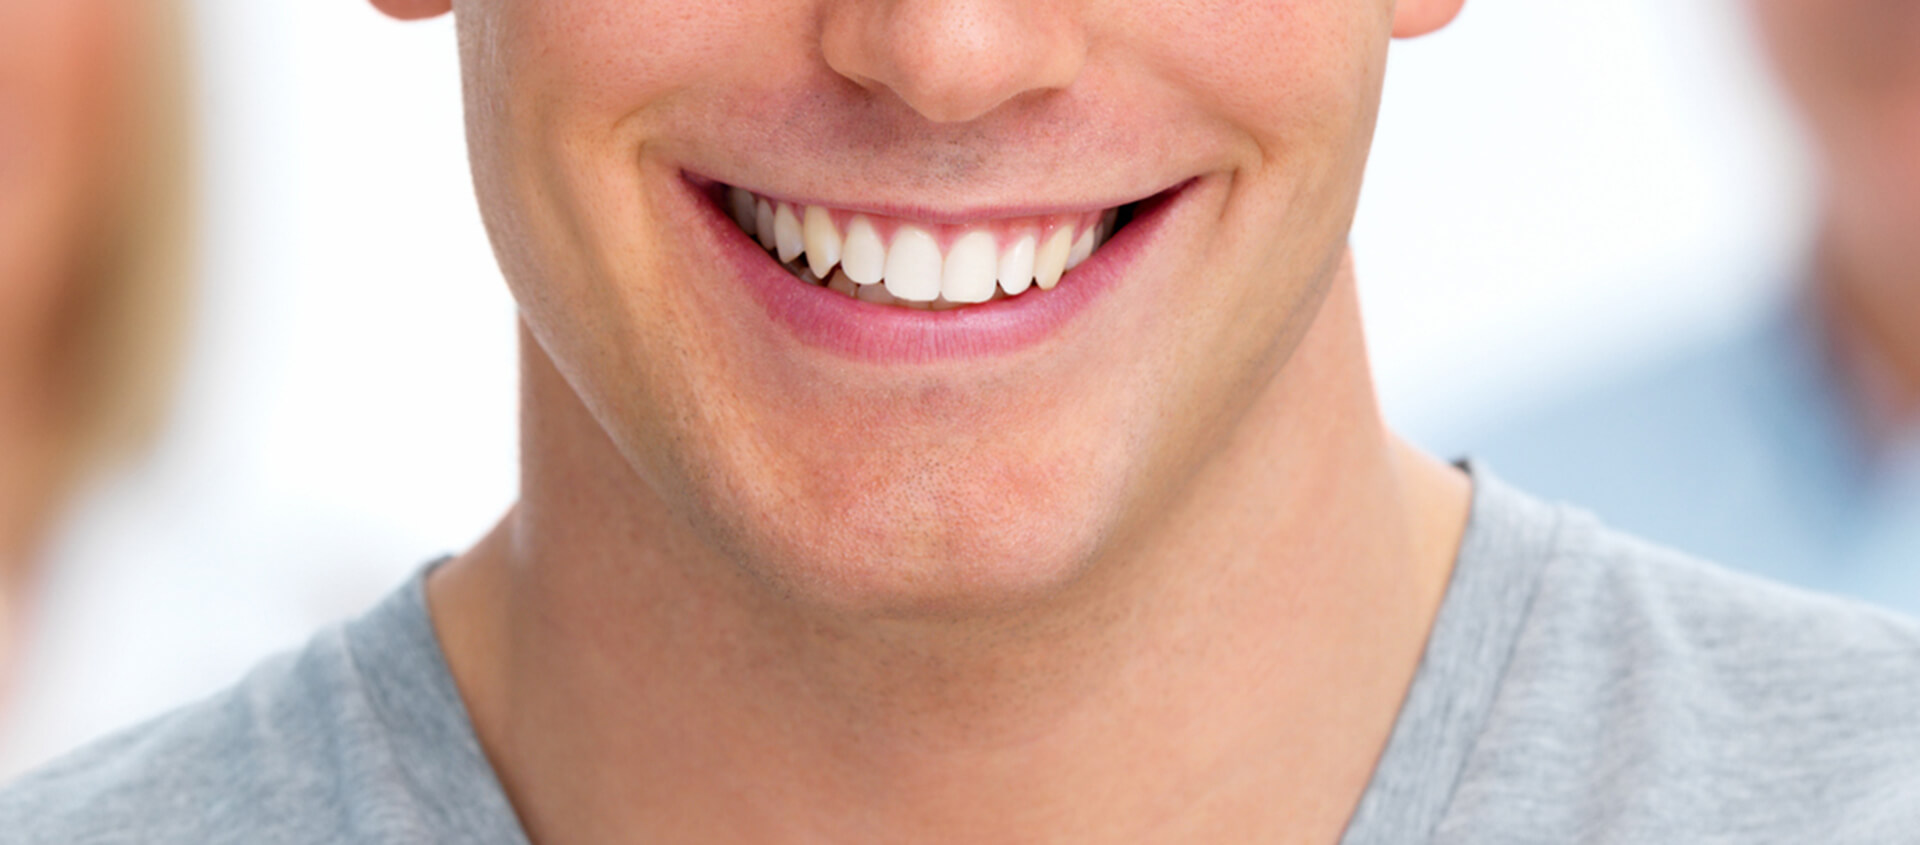 Finding a Dentist for Implants in Middletown Area Became Easier